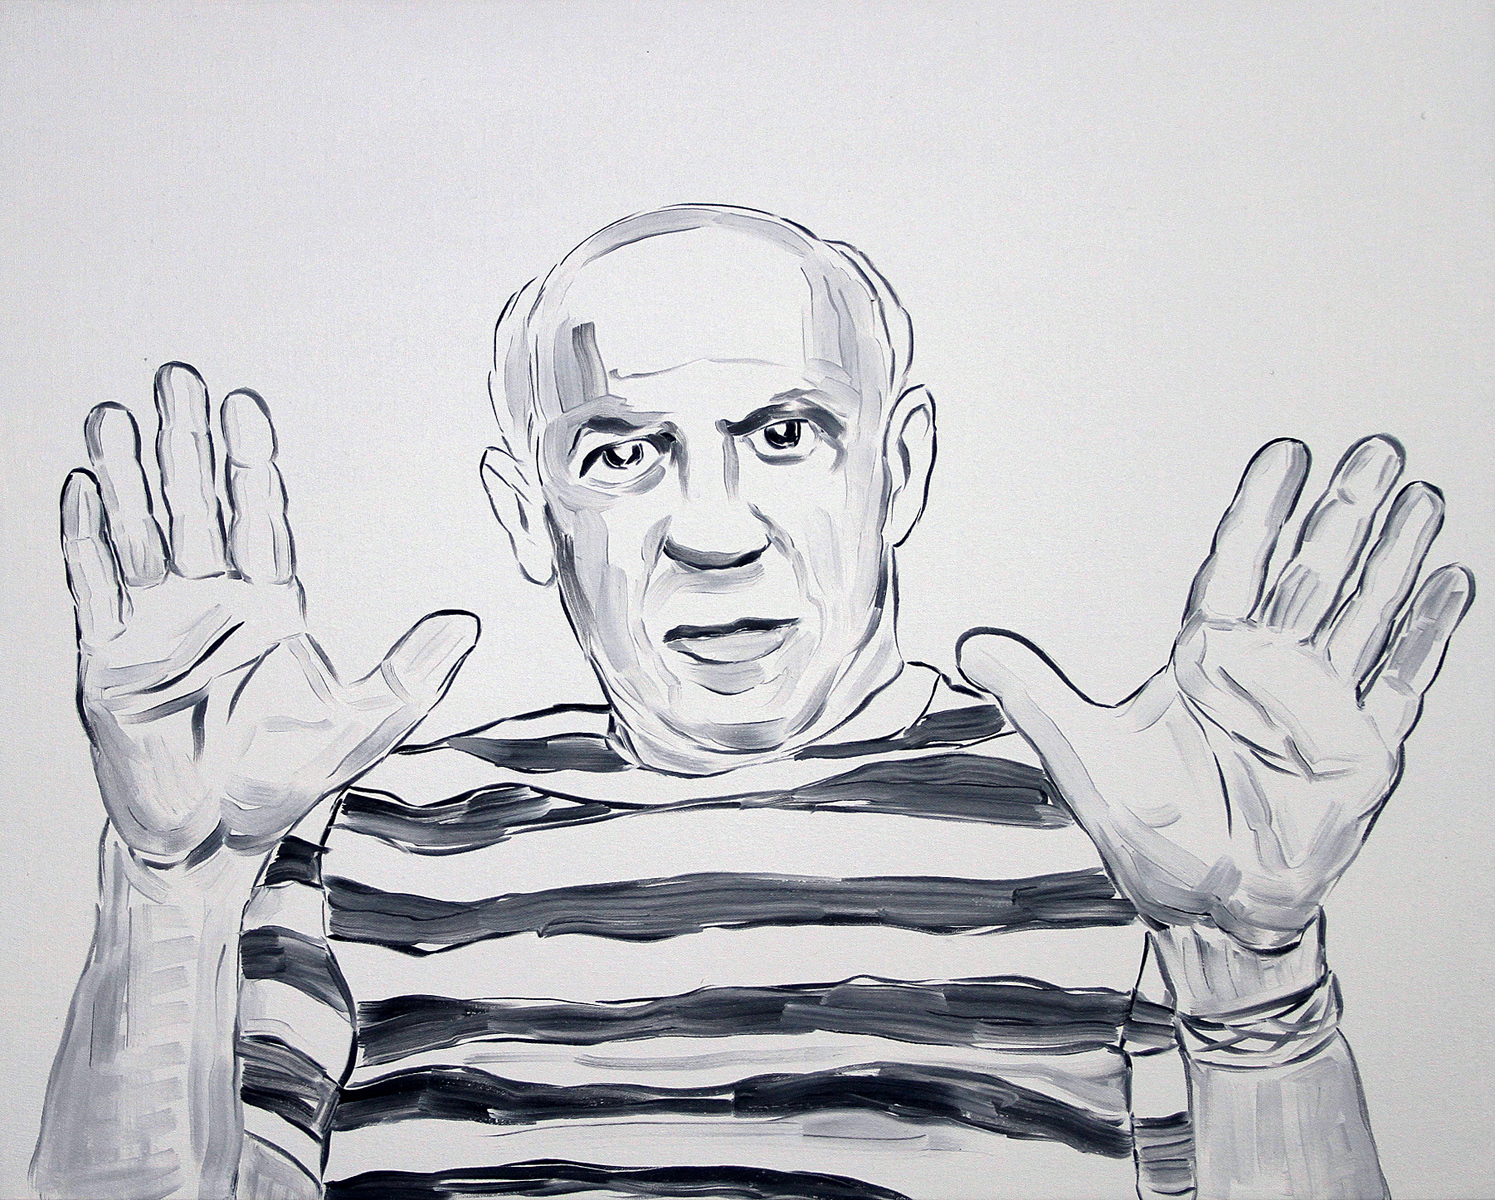 Picasso Lifting Hands (Empty)